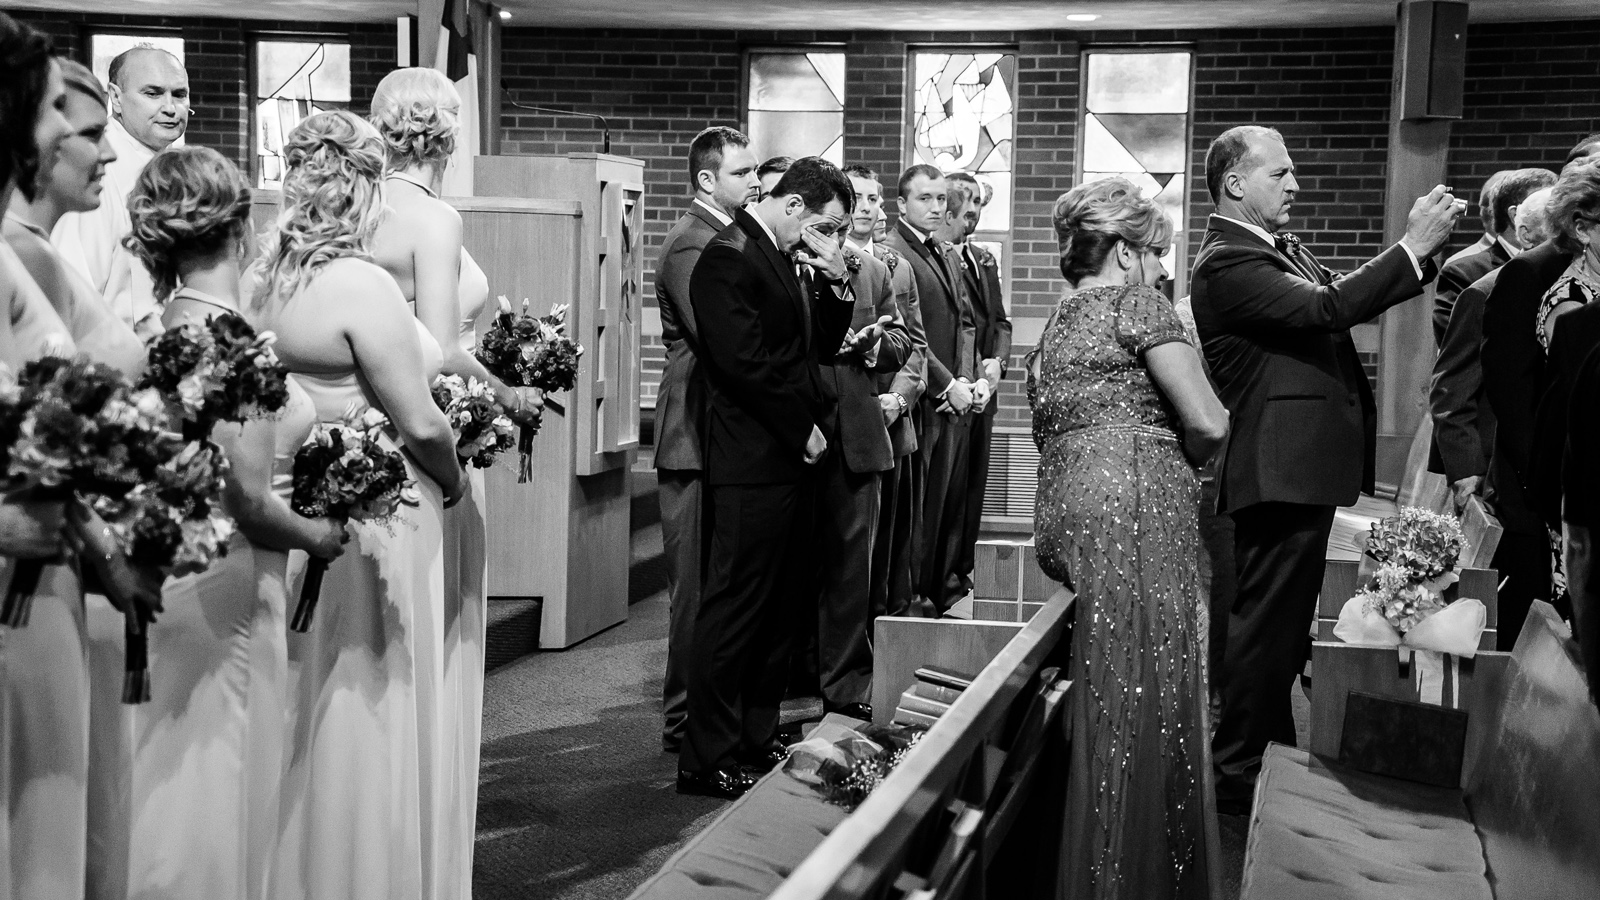 Millstadt Bride Wedding Photos at St. Paul United Church of Christ with St. Louis Wedding Photographers by Oldani Photography 1.jpg